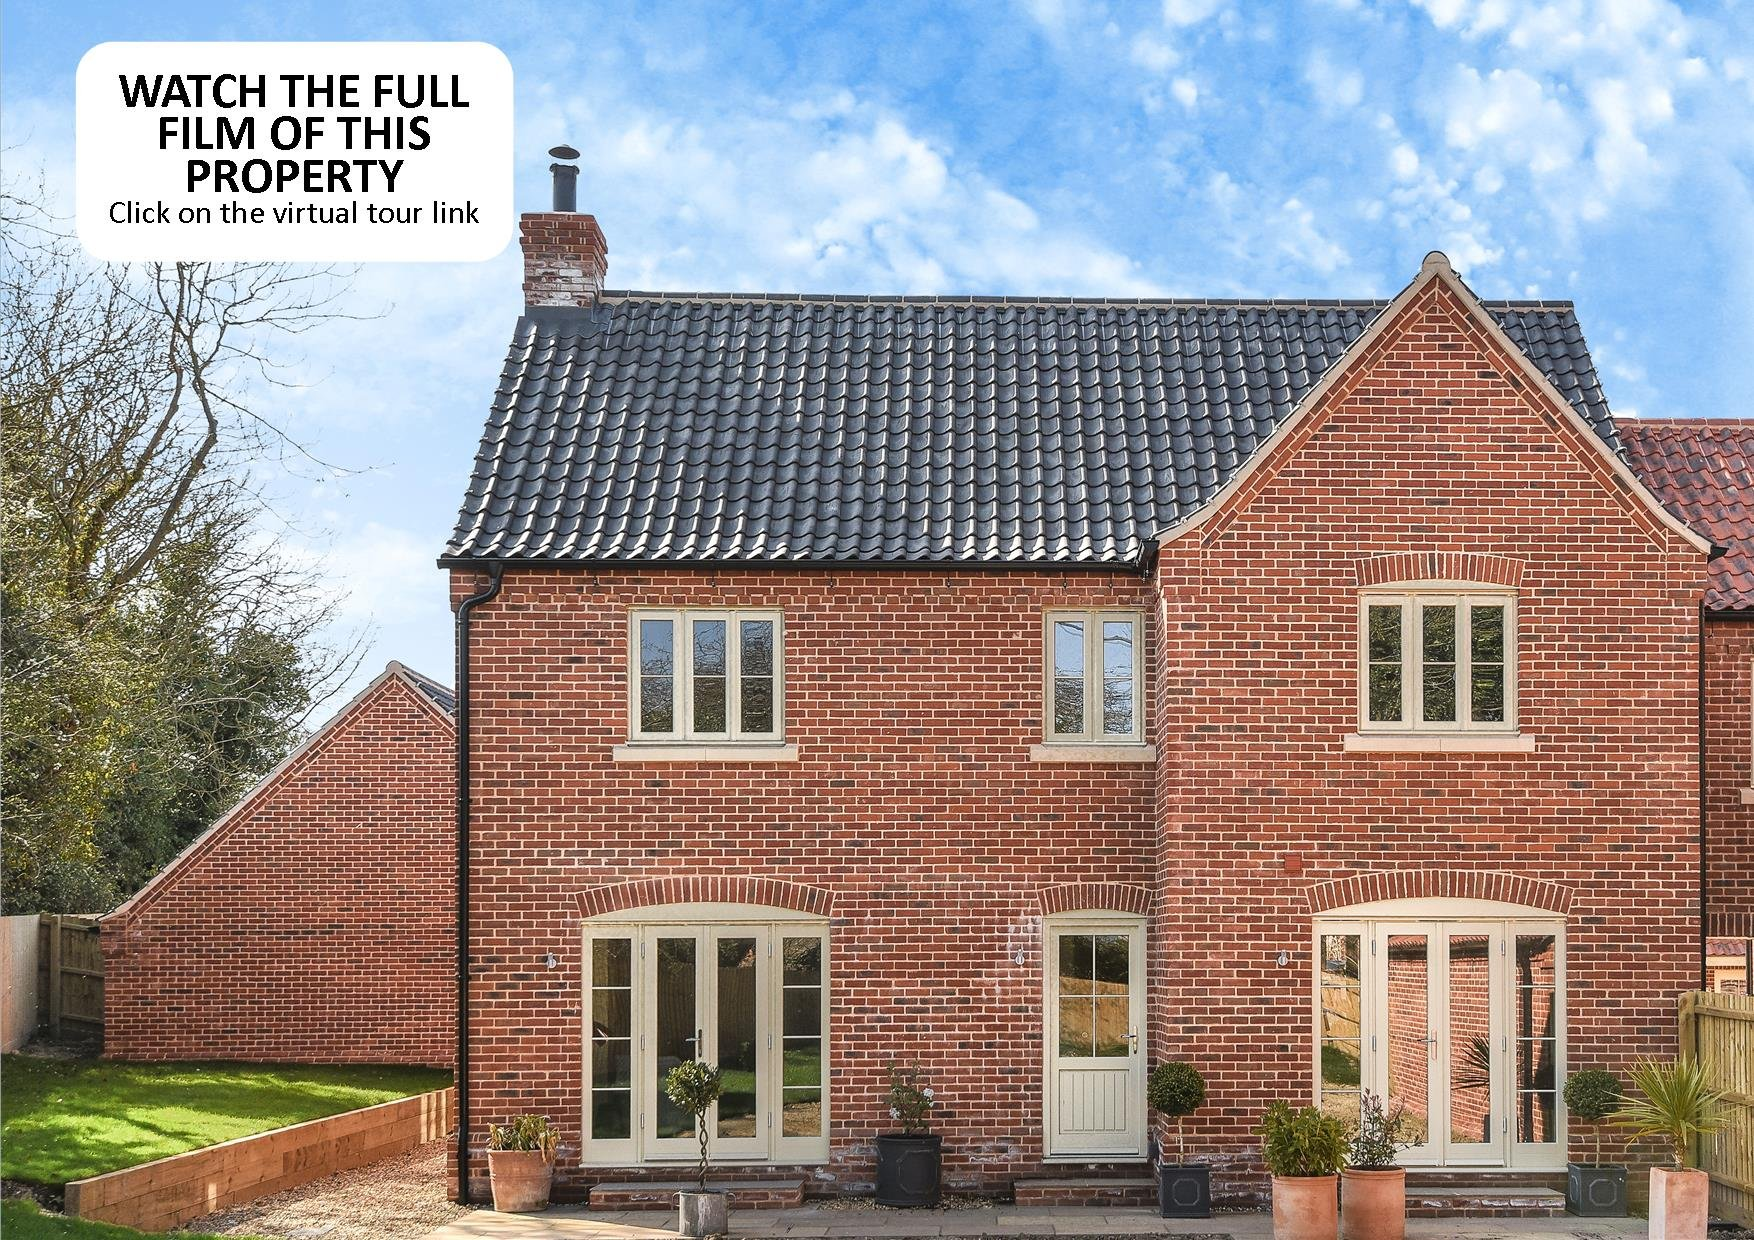 The Street Weybourne Holt Nr25 4 Bedroom Link Detached House For Full Brick Brand New Home On Wiring To Garage Sale 45945469 Primelocation